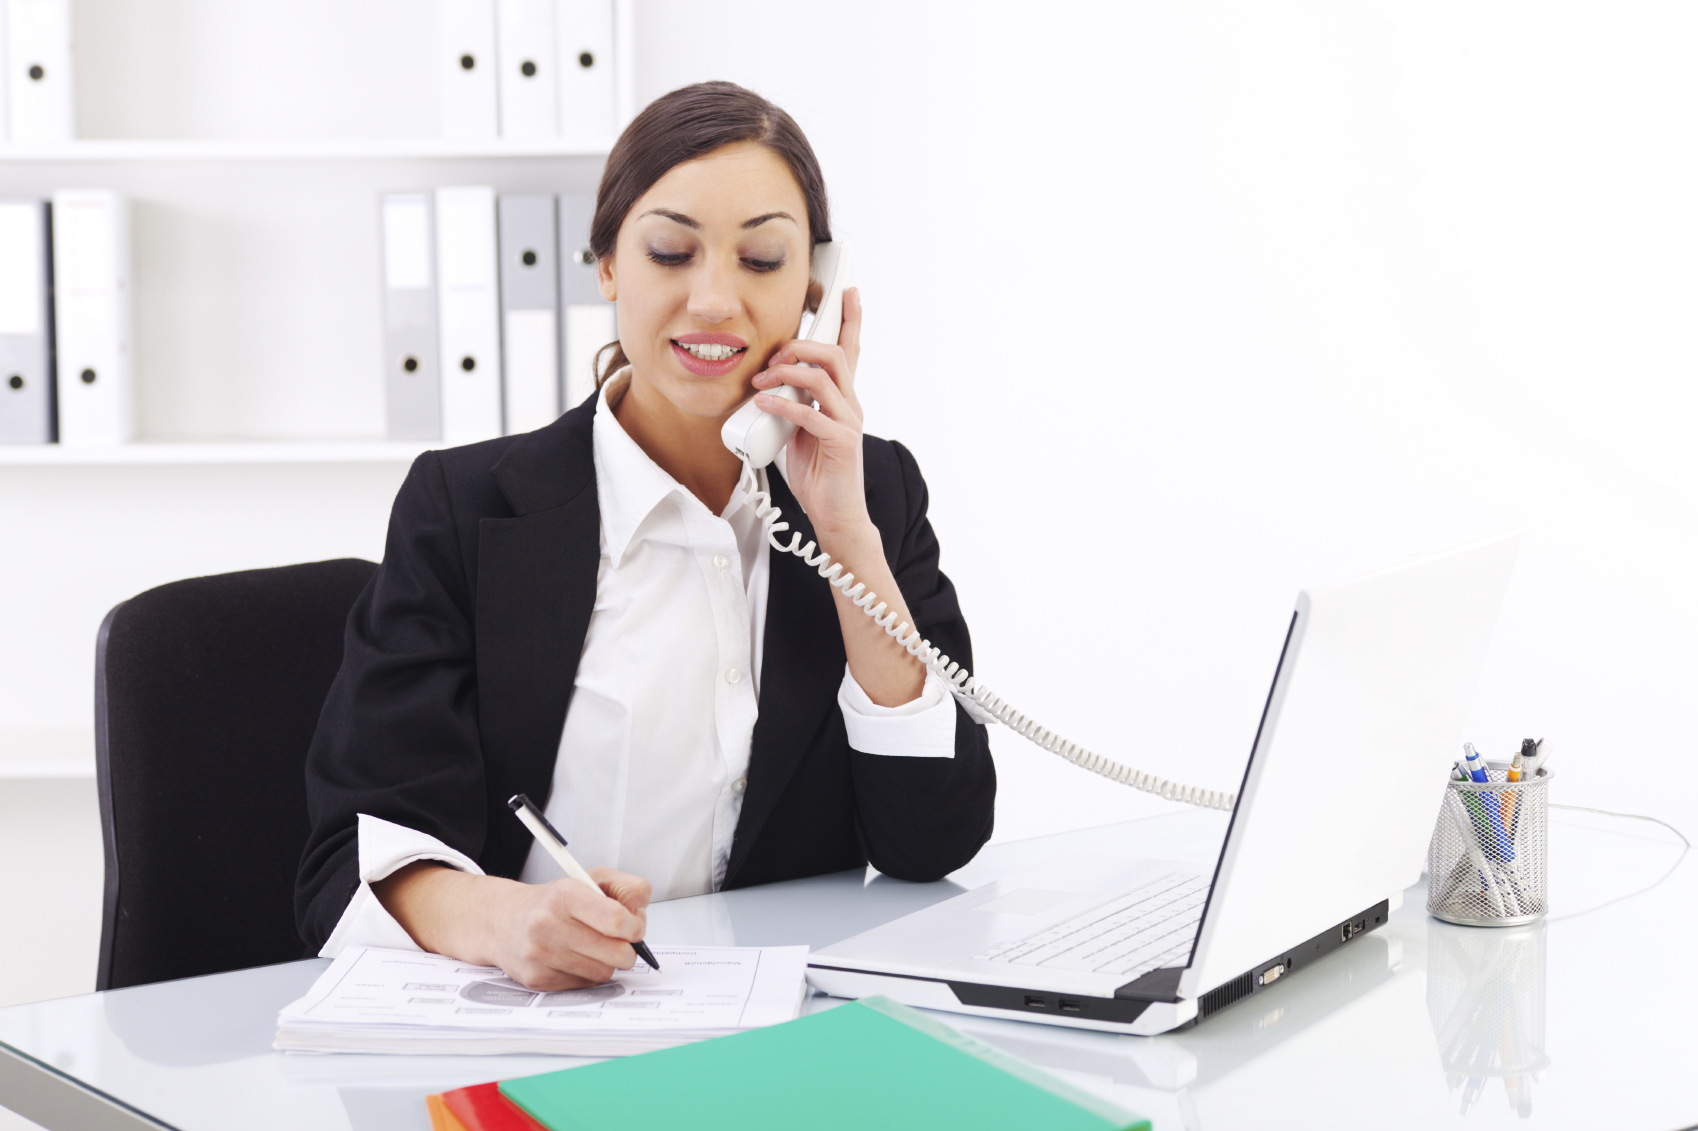 blog it s crucial to treat a phone interview just like an in person interview you need to prepare ensure you re not distracted and follow up after